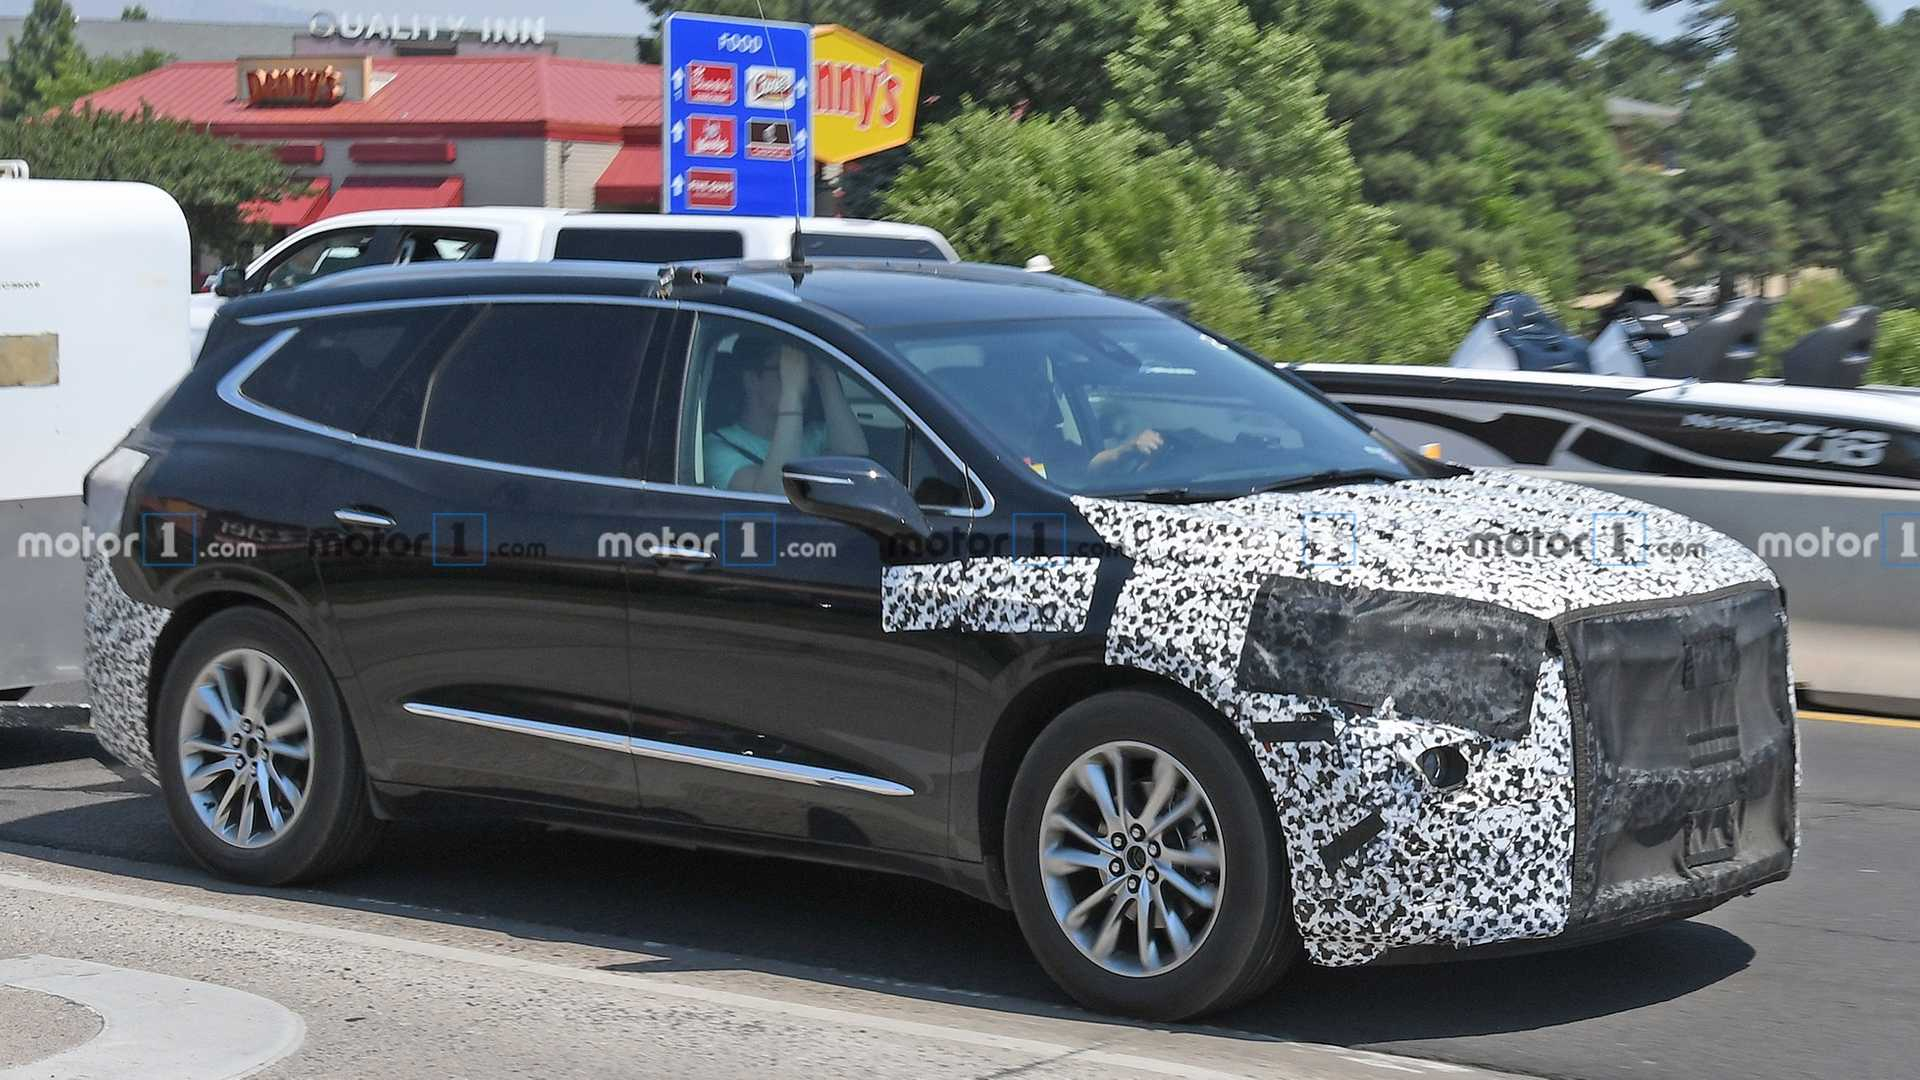 2021 Buick Enclave Spied For The First Time 2022 Buick Enclave Avenir Engine, Specs, Lease